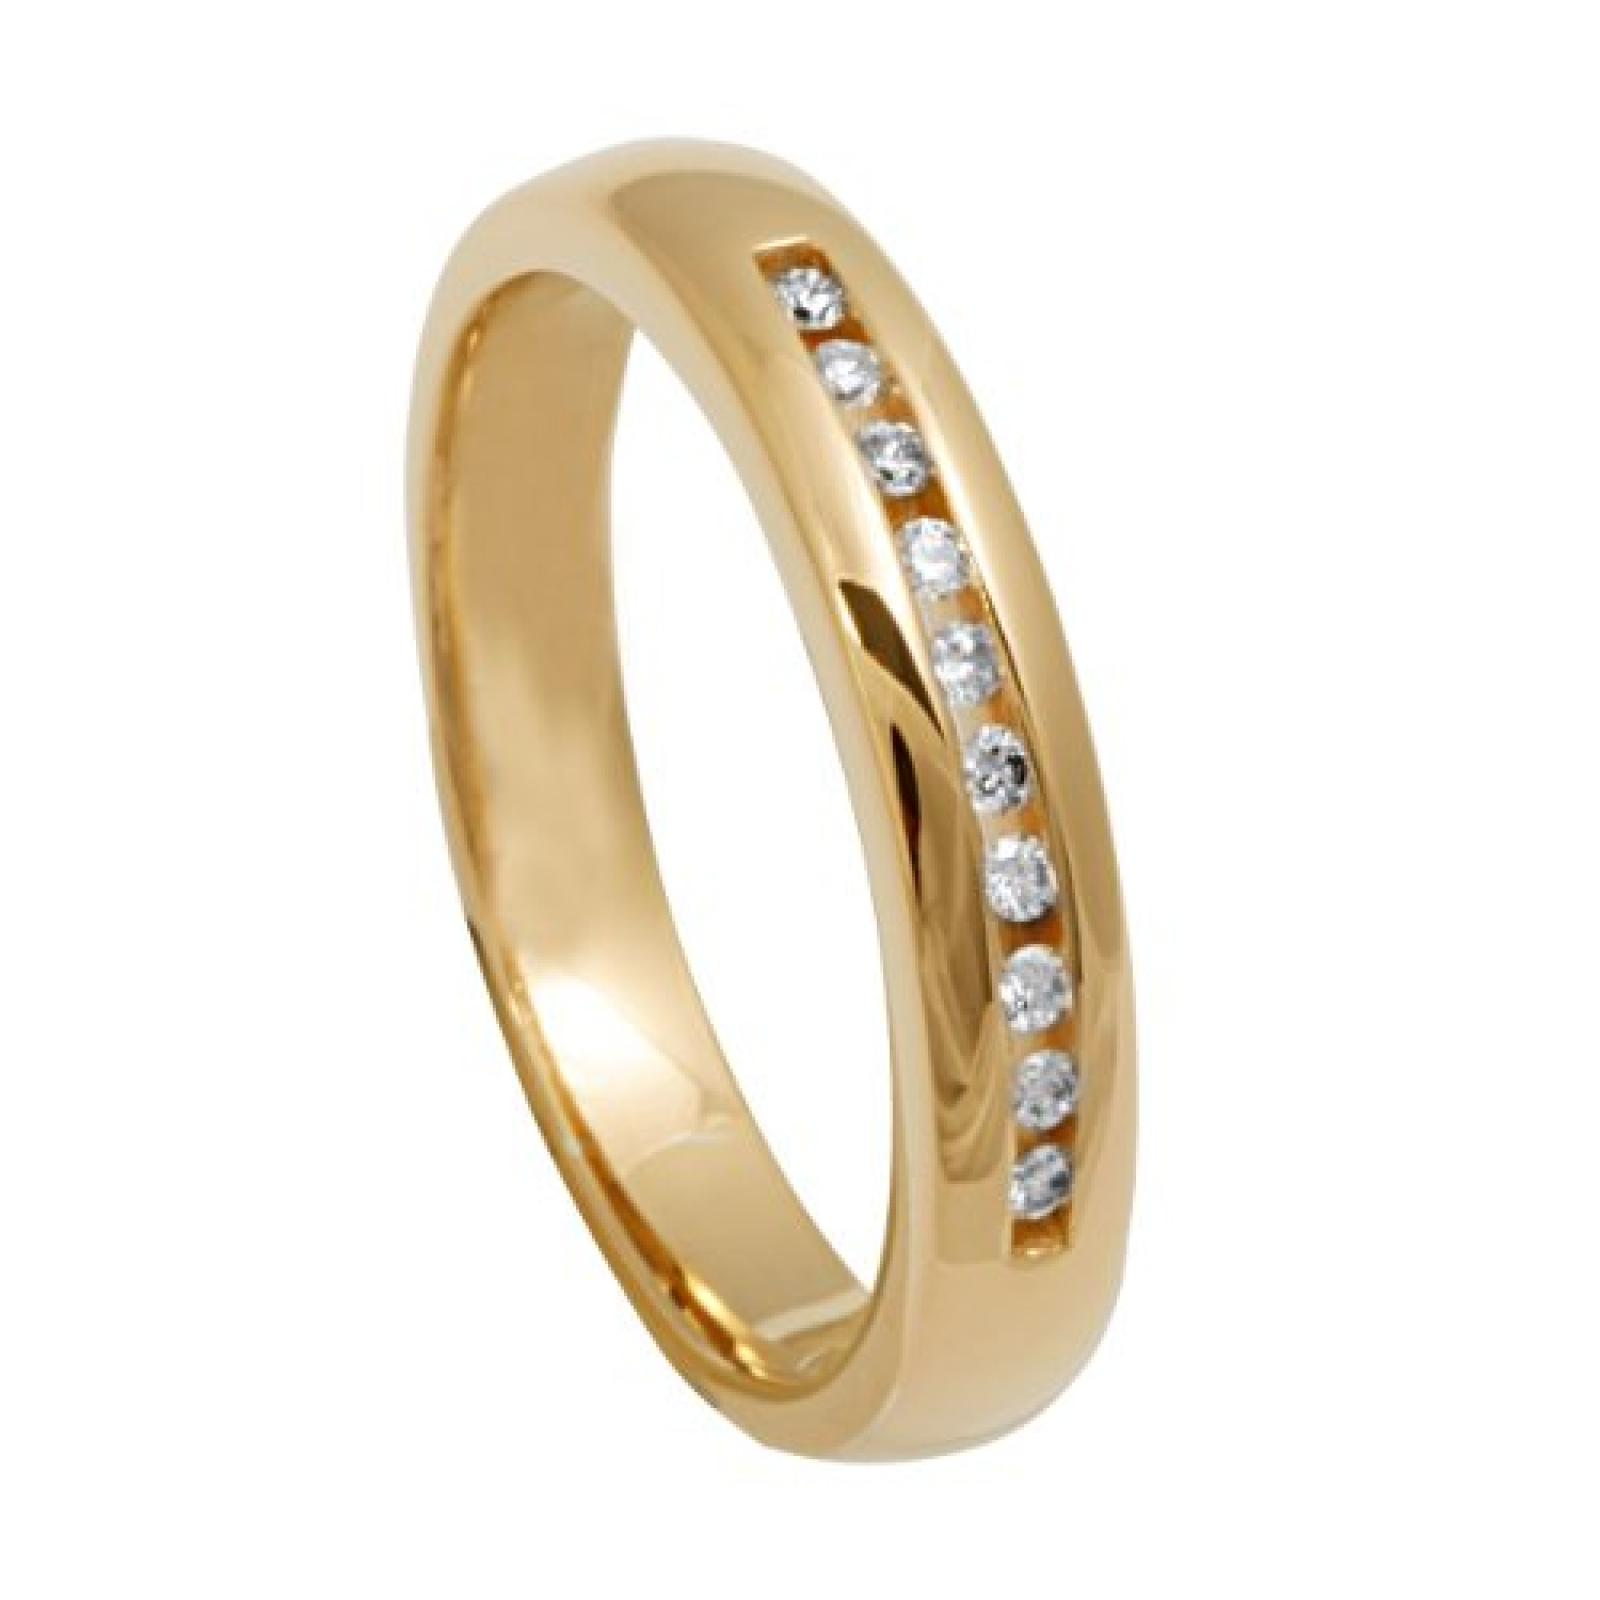 Bella Donna Damen Diamantring 333/000 Gelbgold 10 Brillanten  0,12ct. W-PI